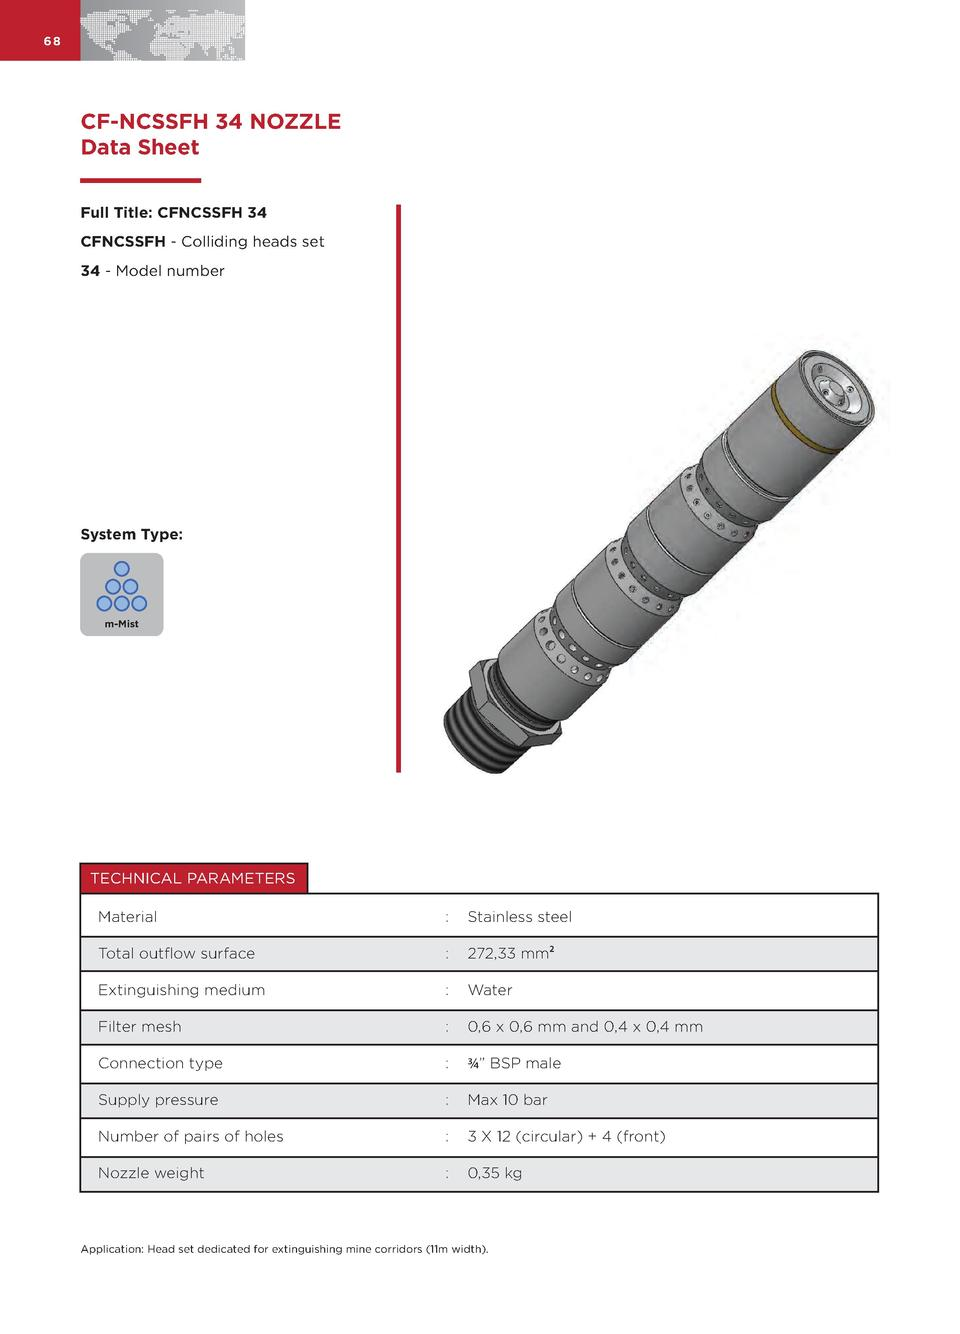 68  CF-NCSSFH 34 NOZZLE Data Sheet Full Title  CFNCSSFH 34 CFNCSSFH - Colliding heads set 34 - Model number  System Type  ...